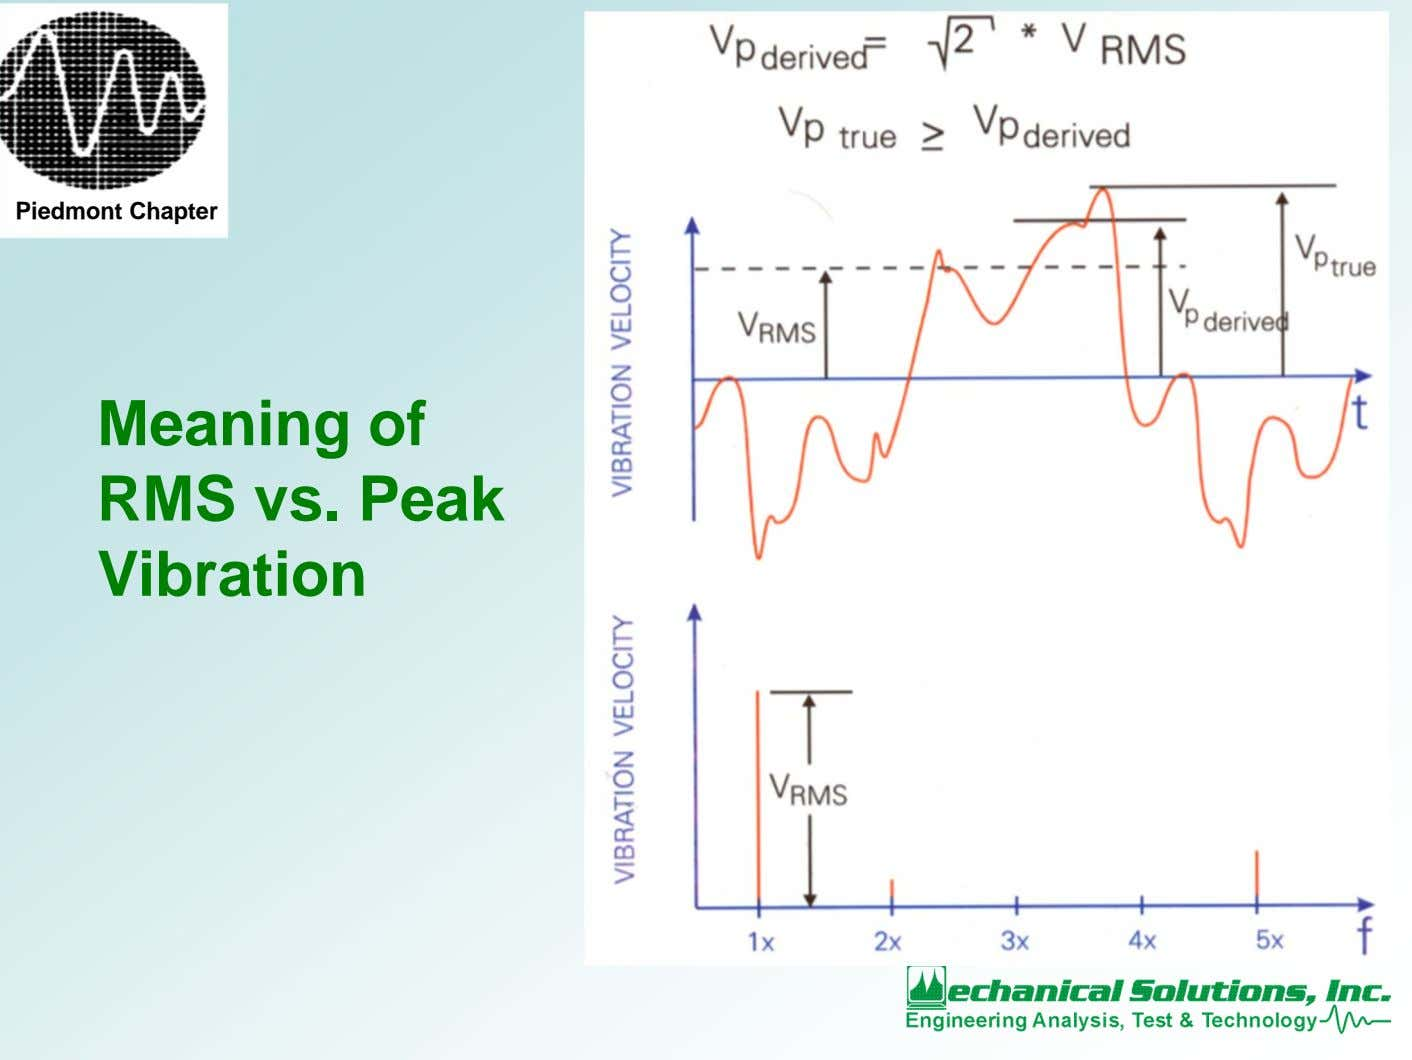 Piedmont Chapter Meaning of RMS vs. Peak Vibration